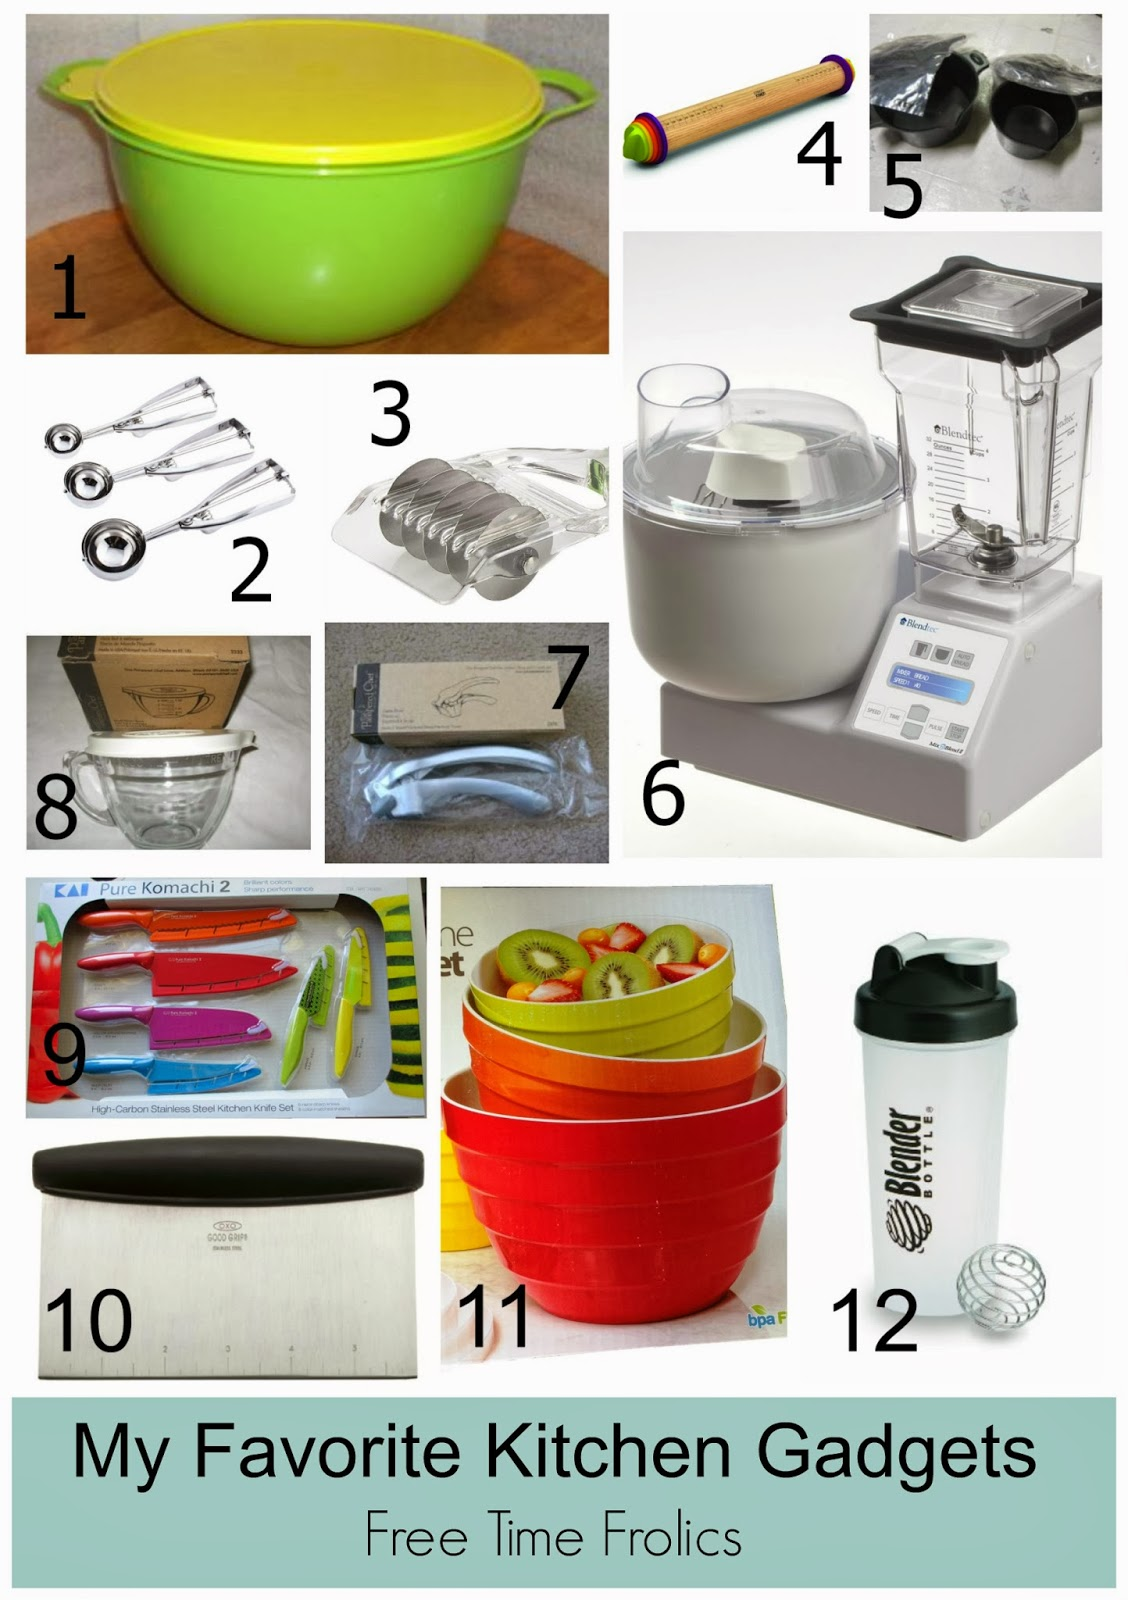 Kitchen Gadgets Store Counter My Favorite Free Time Frolics